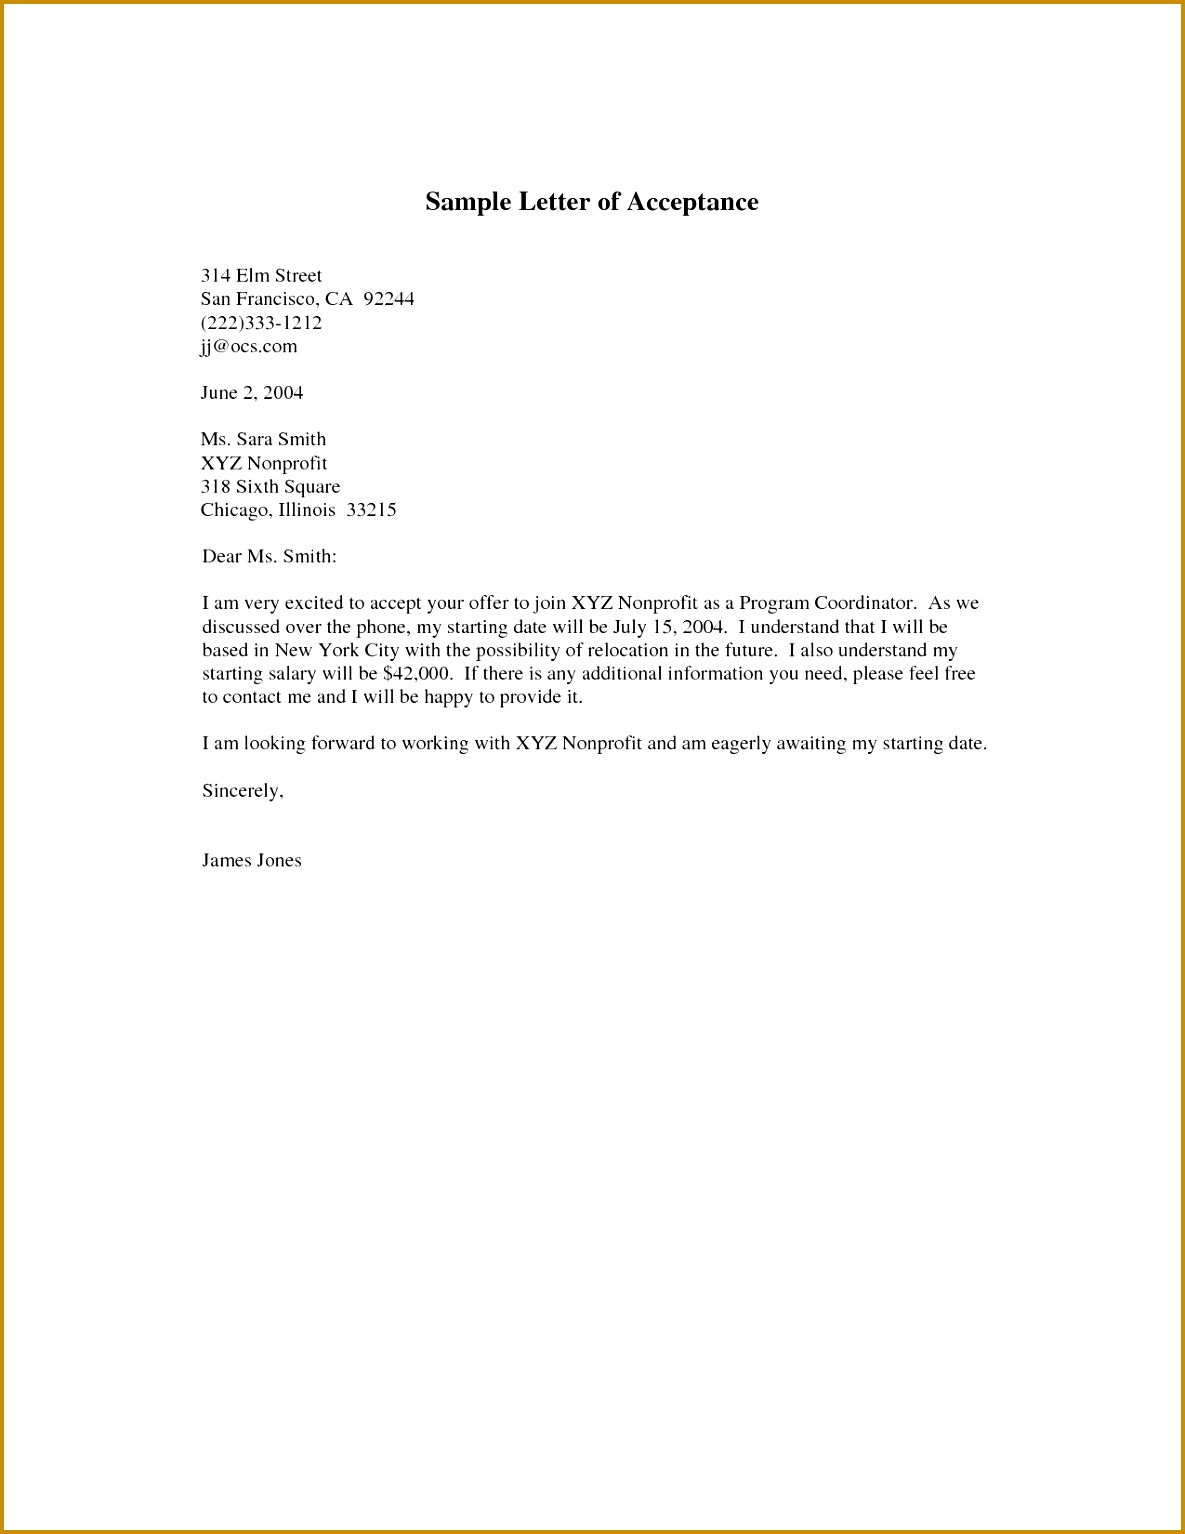 Interview Confirmation Email Sample 93412 Reply Interview Confirmation Email Free Custom Invitation